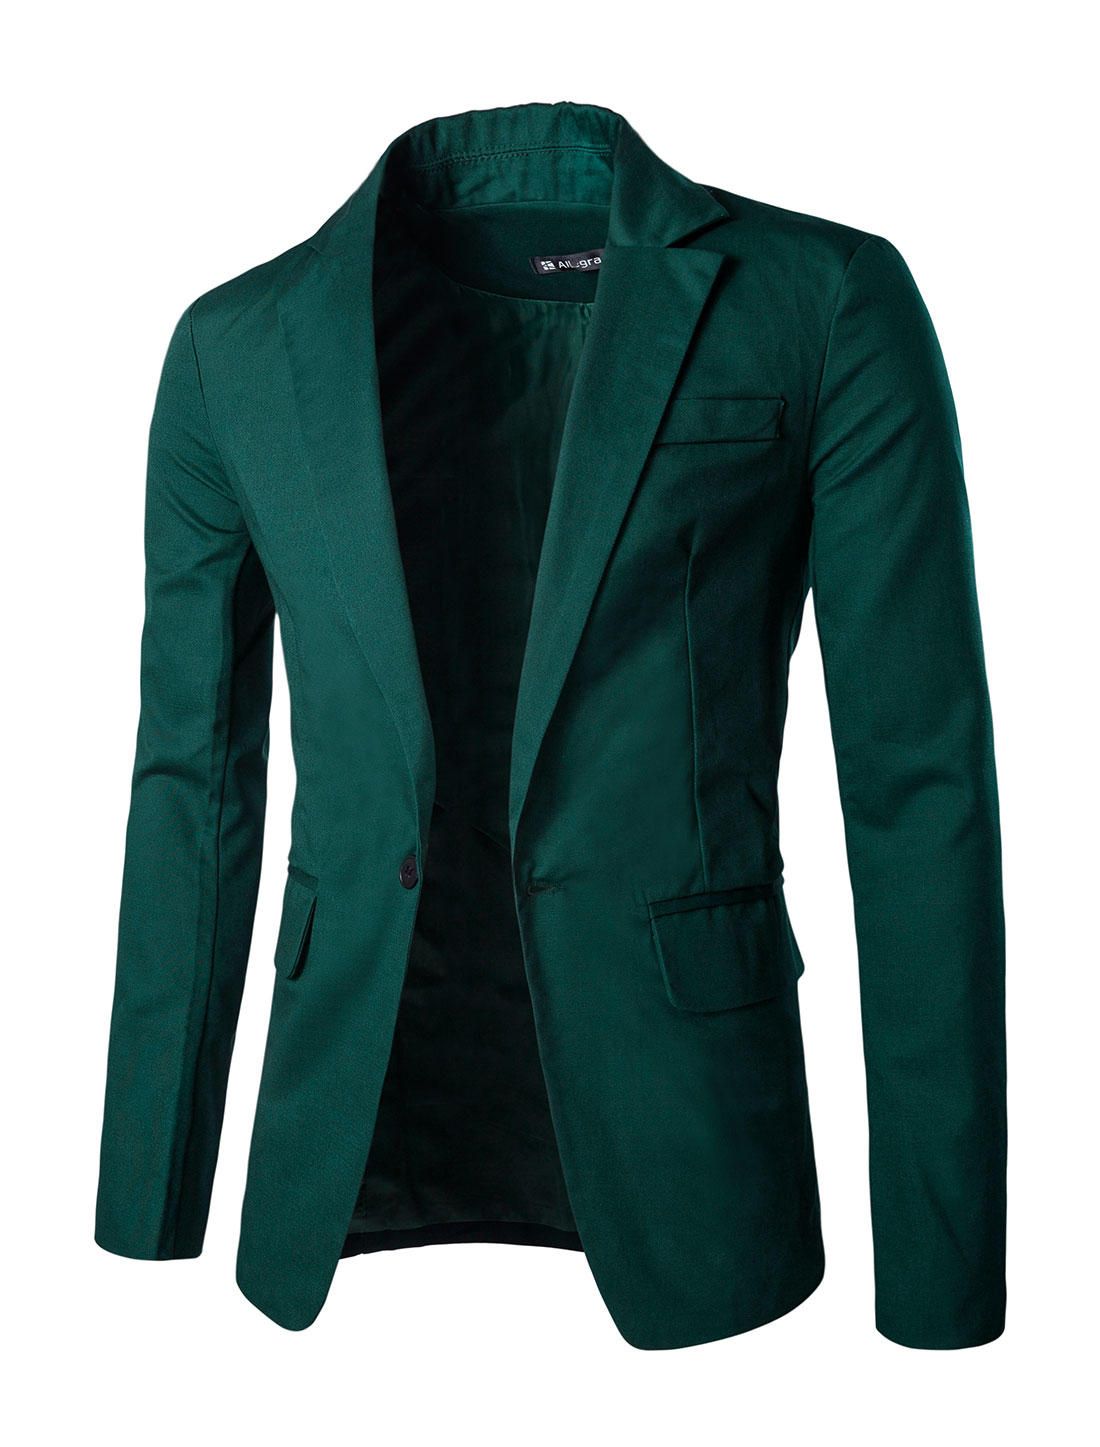 Unique Bargains Men Notched Lapel Center-Vent Back One-Button Blazer Dark Green L